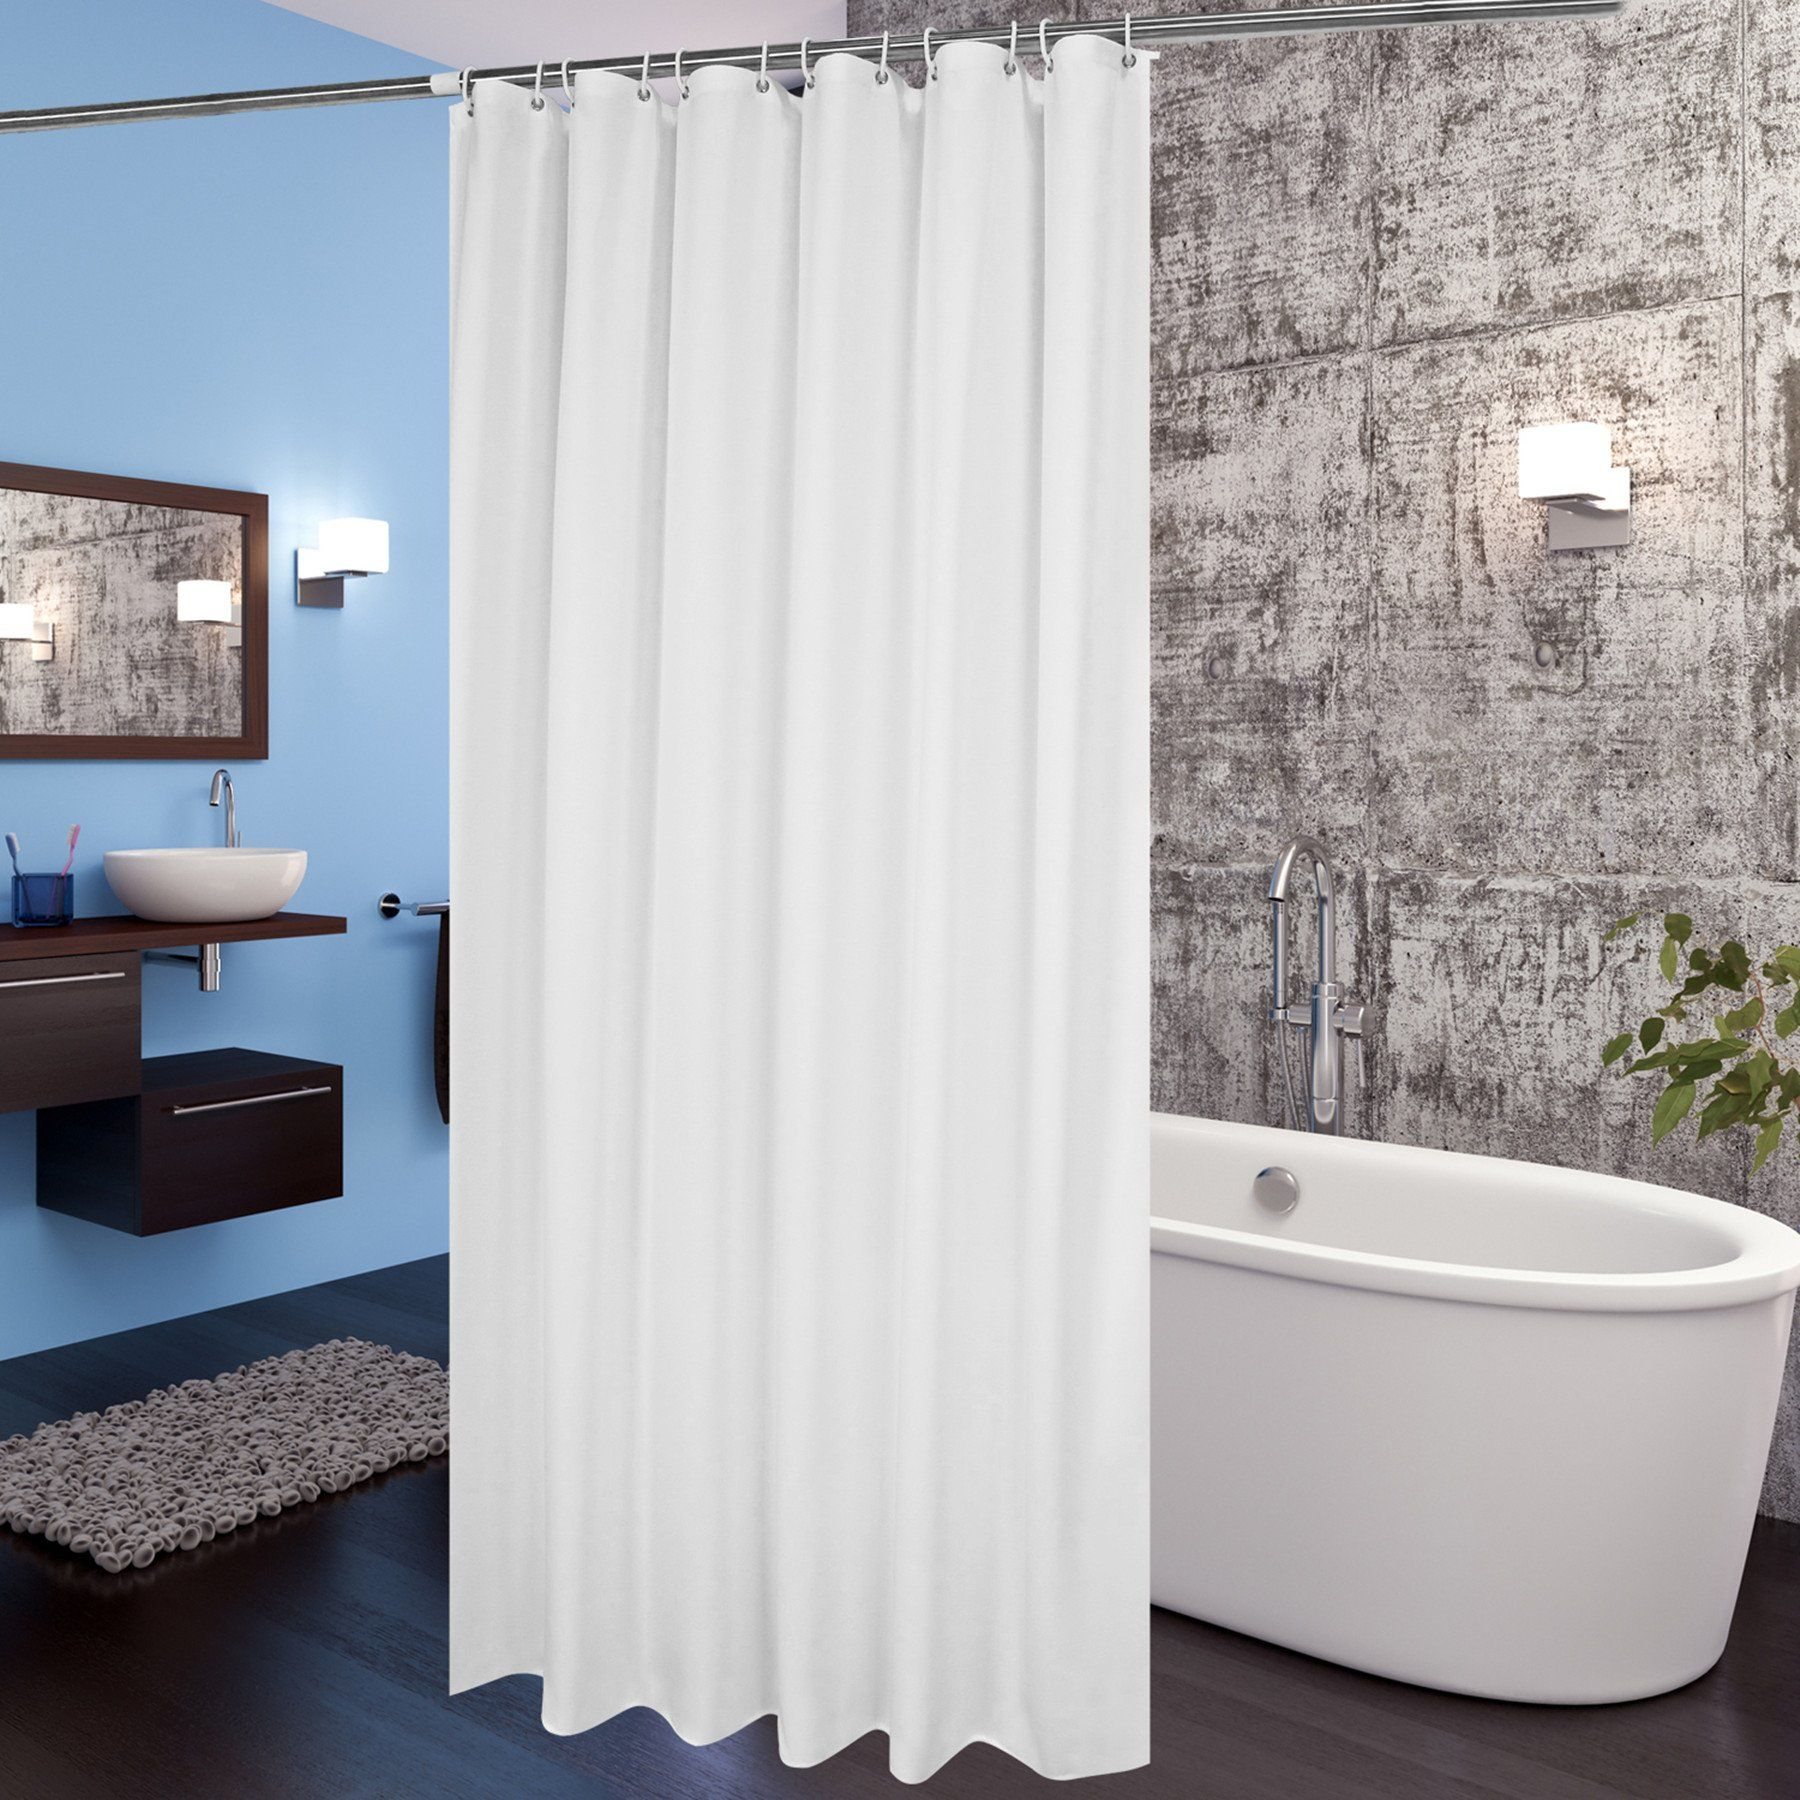 Hotel Shower Curtain Liner Aoohome Mildew Resistant Fabric With Weighted Hem Waterproof 72 X Inch White